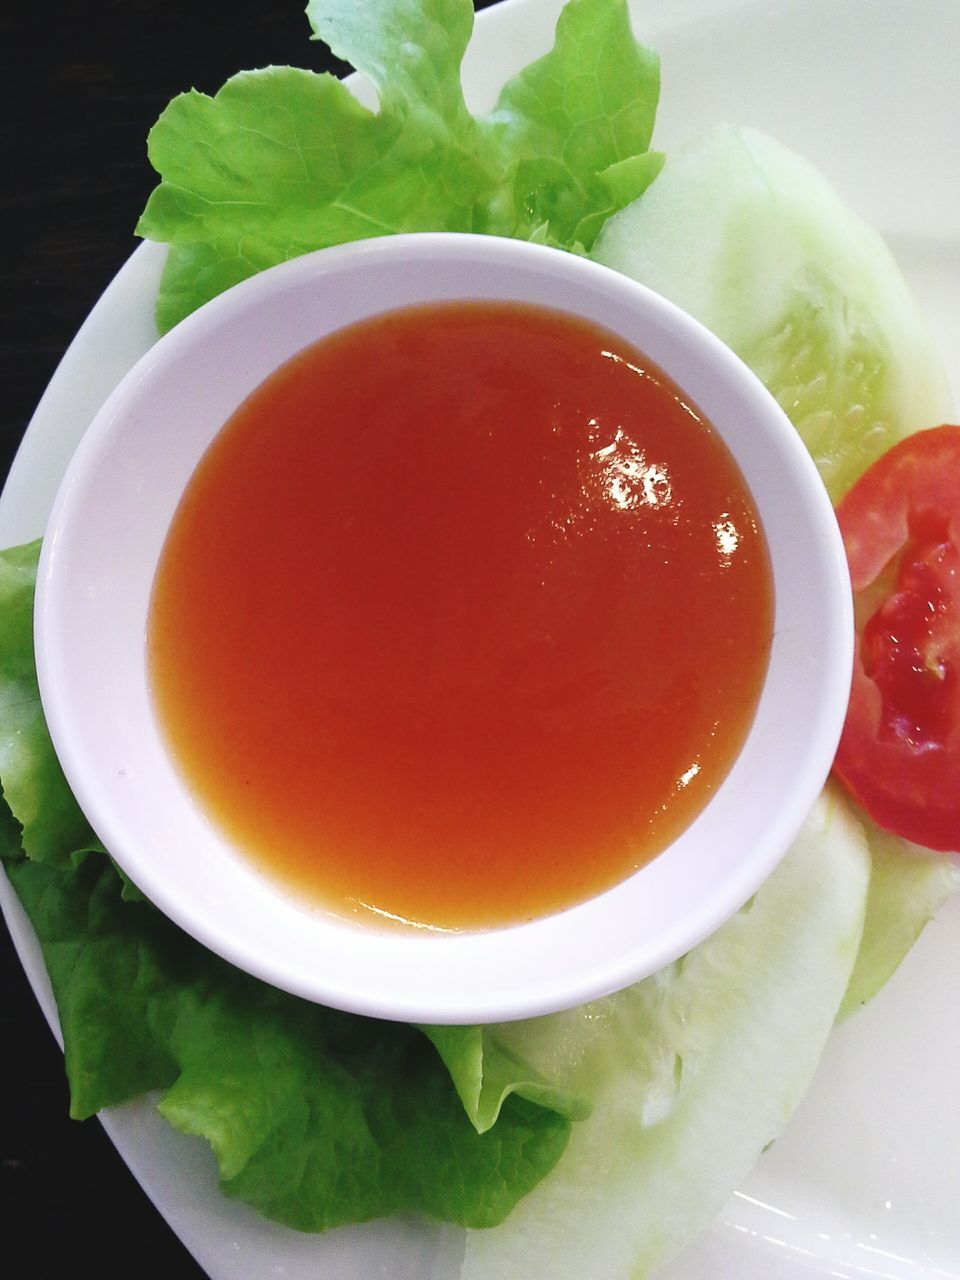 food and drink, food, freshness, no people, serving size, salad, bowl, healthy eating, ready-to-eat, close-up, plate, leaf, indoors, appetizer, dip, day